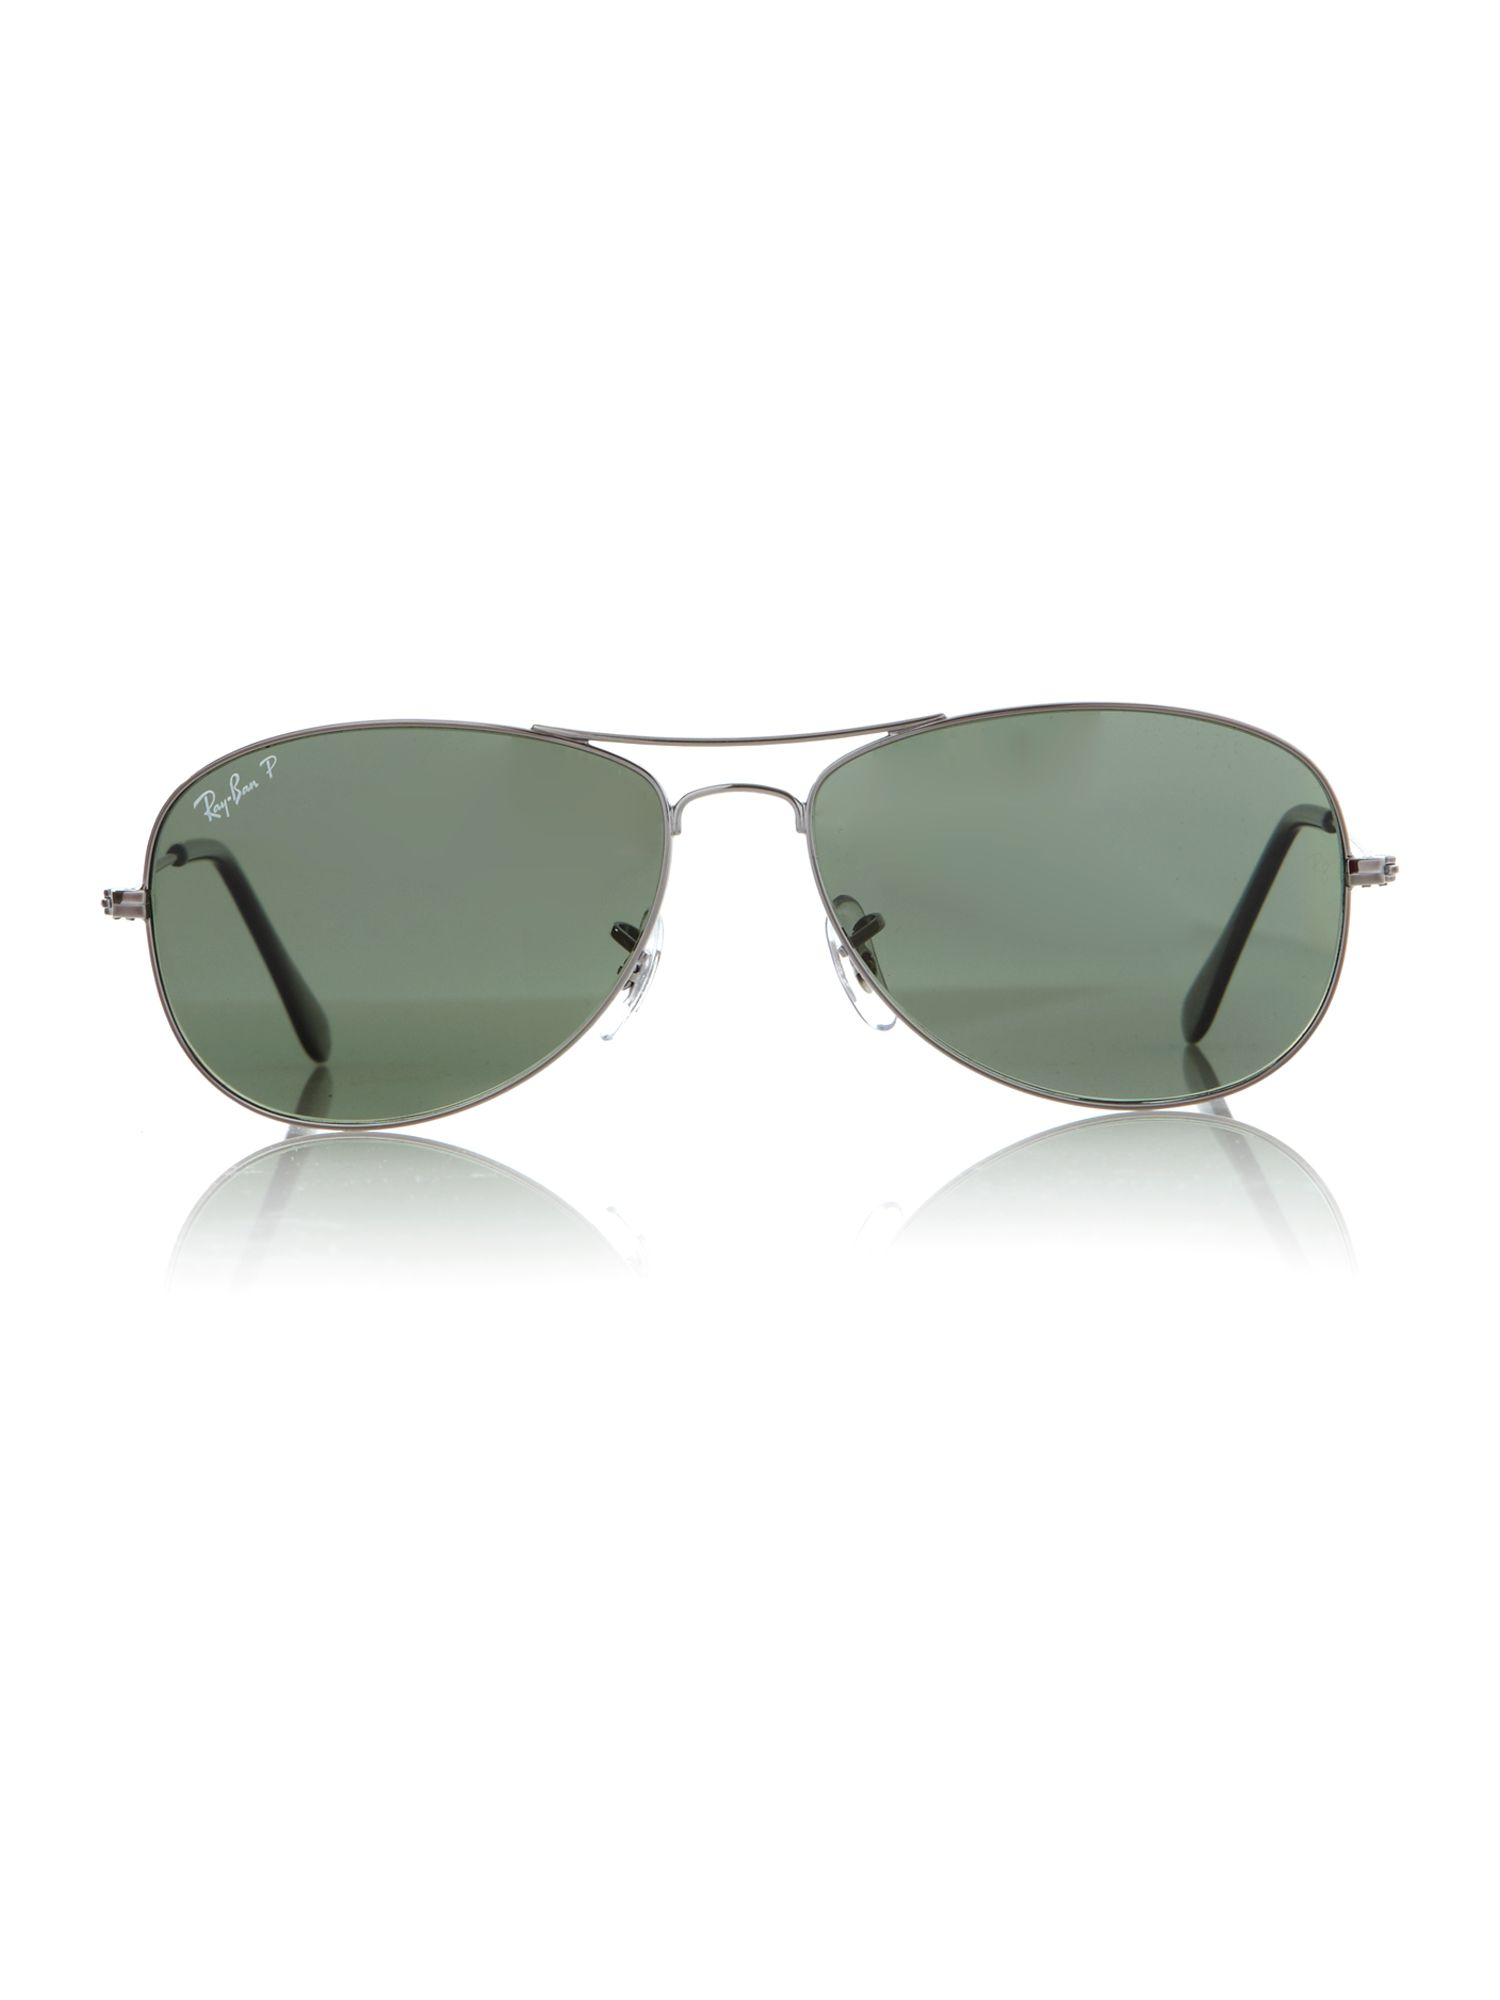 Mens Gunmetal Aviator Sunglasses